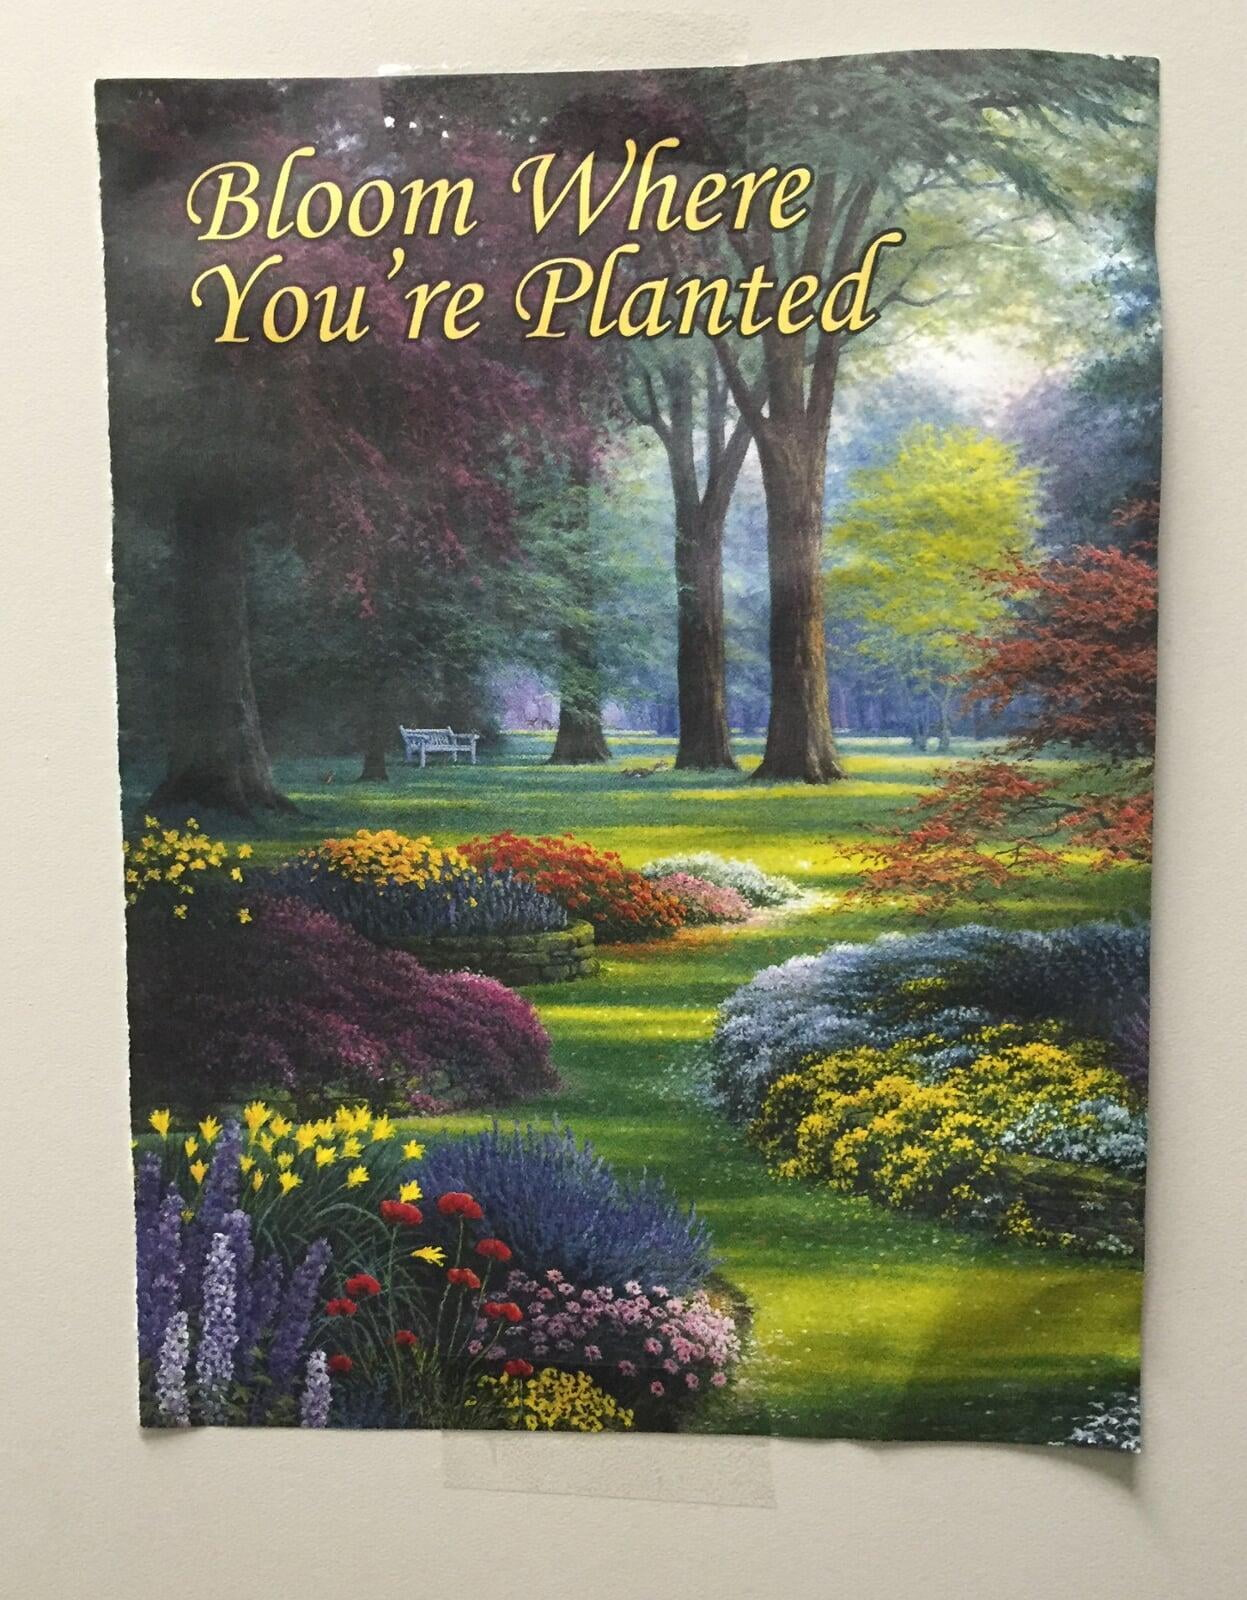 Learn how to stay encouraged and bloom where you're planted on www.MusicOnACart.com